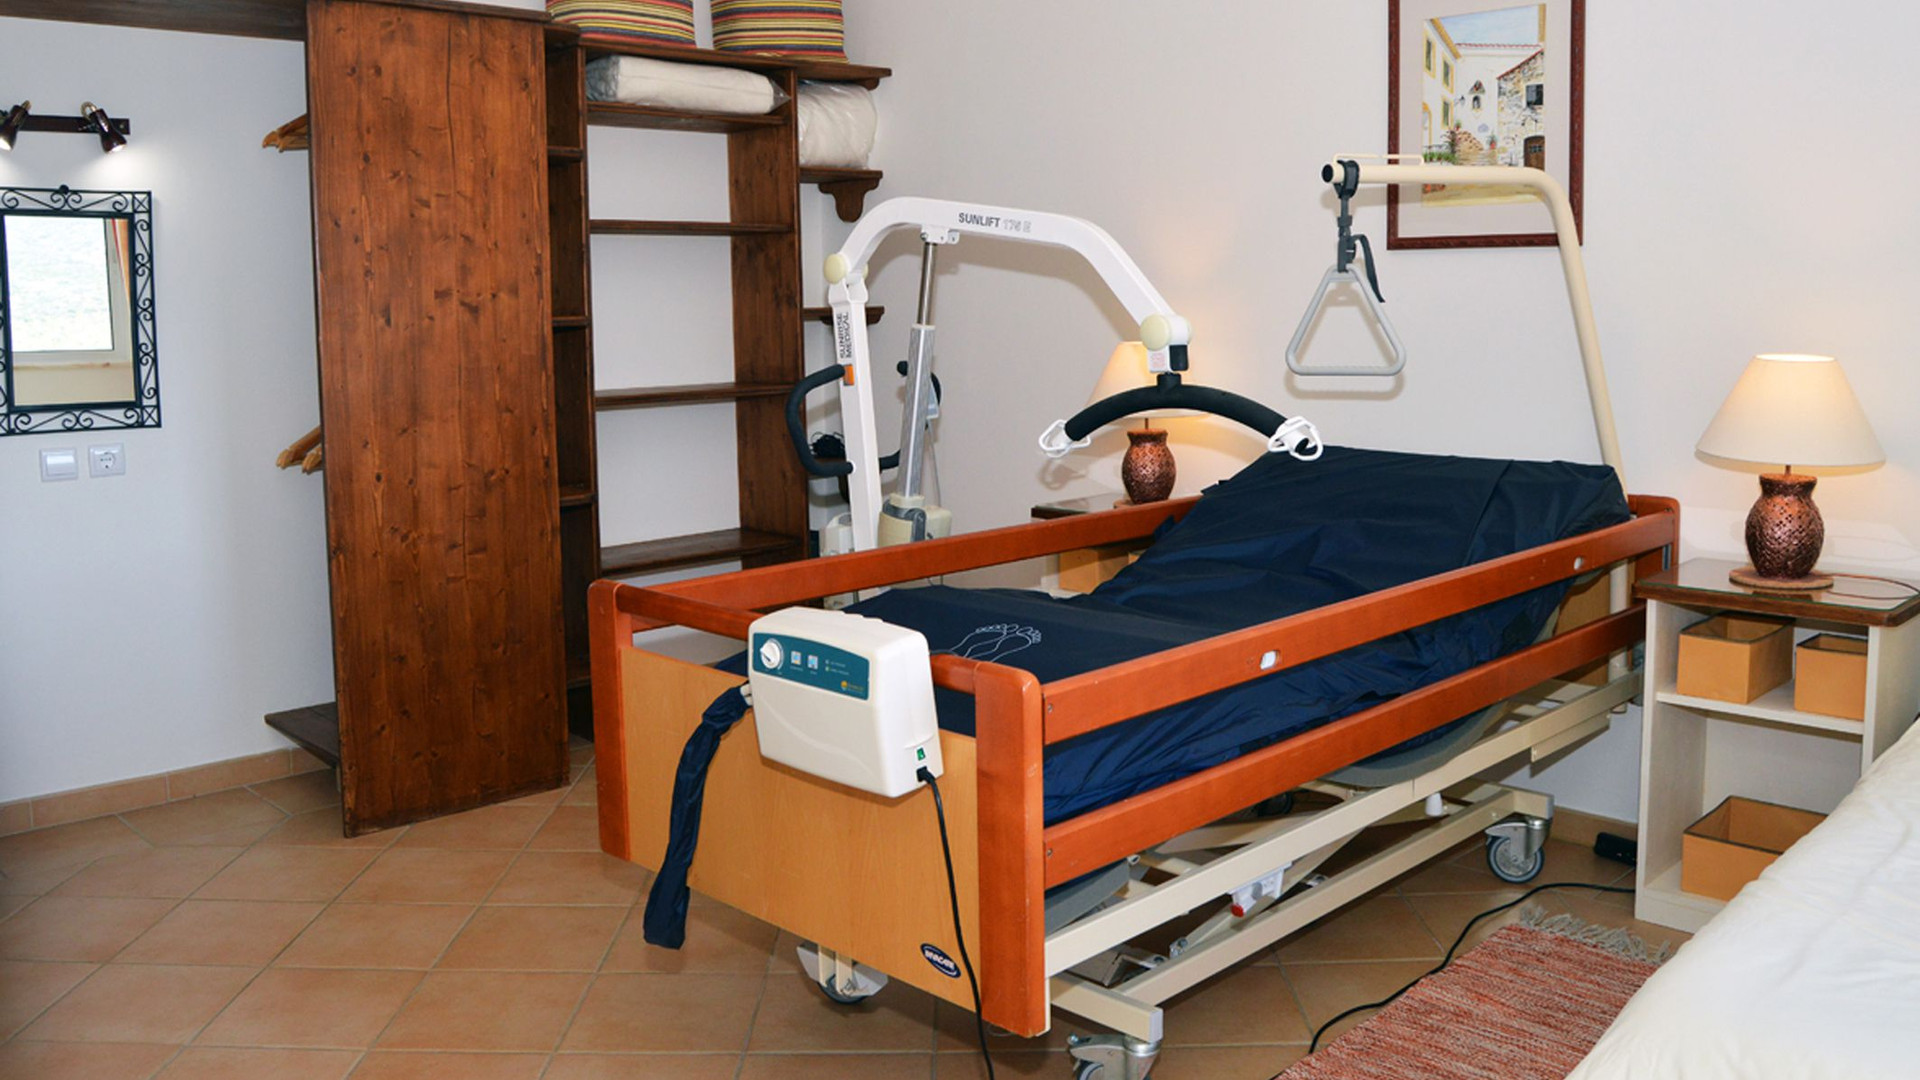 Profiling bed with hoist 2